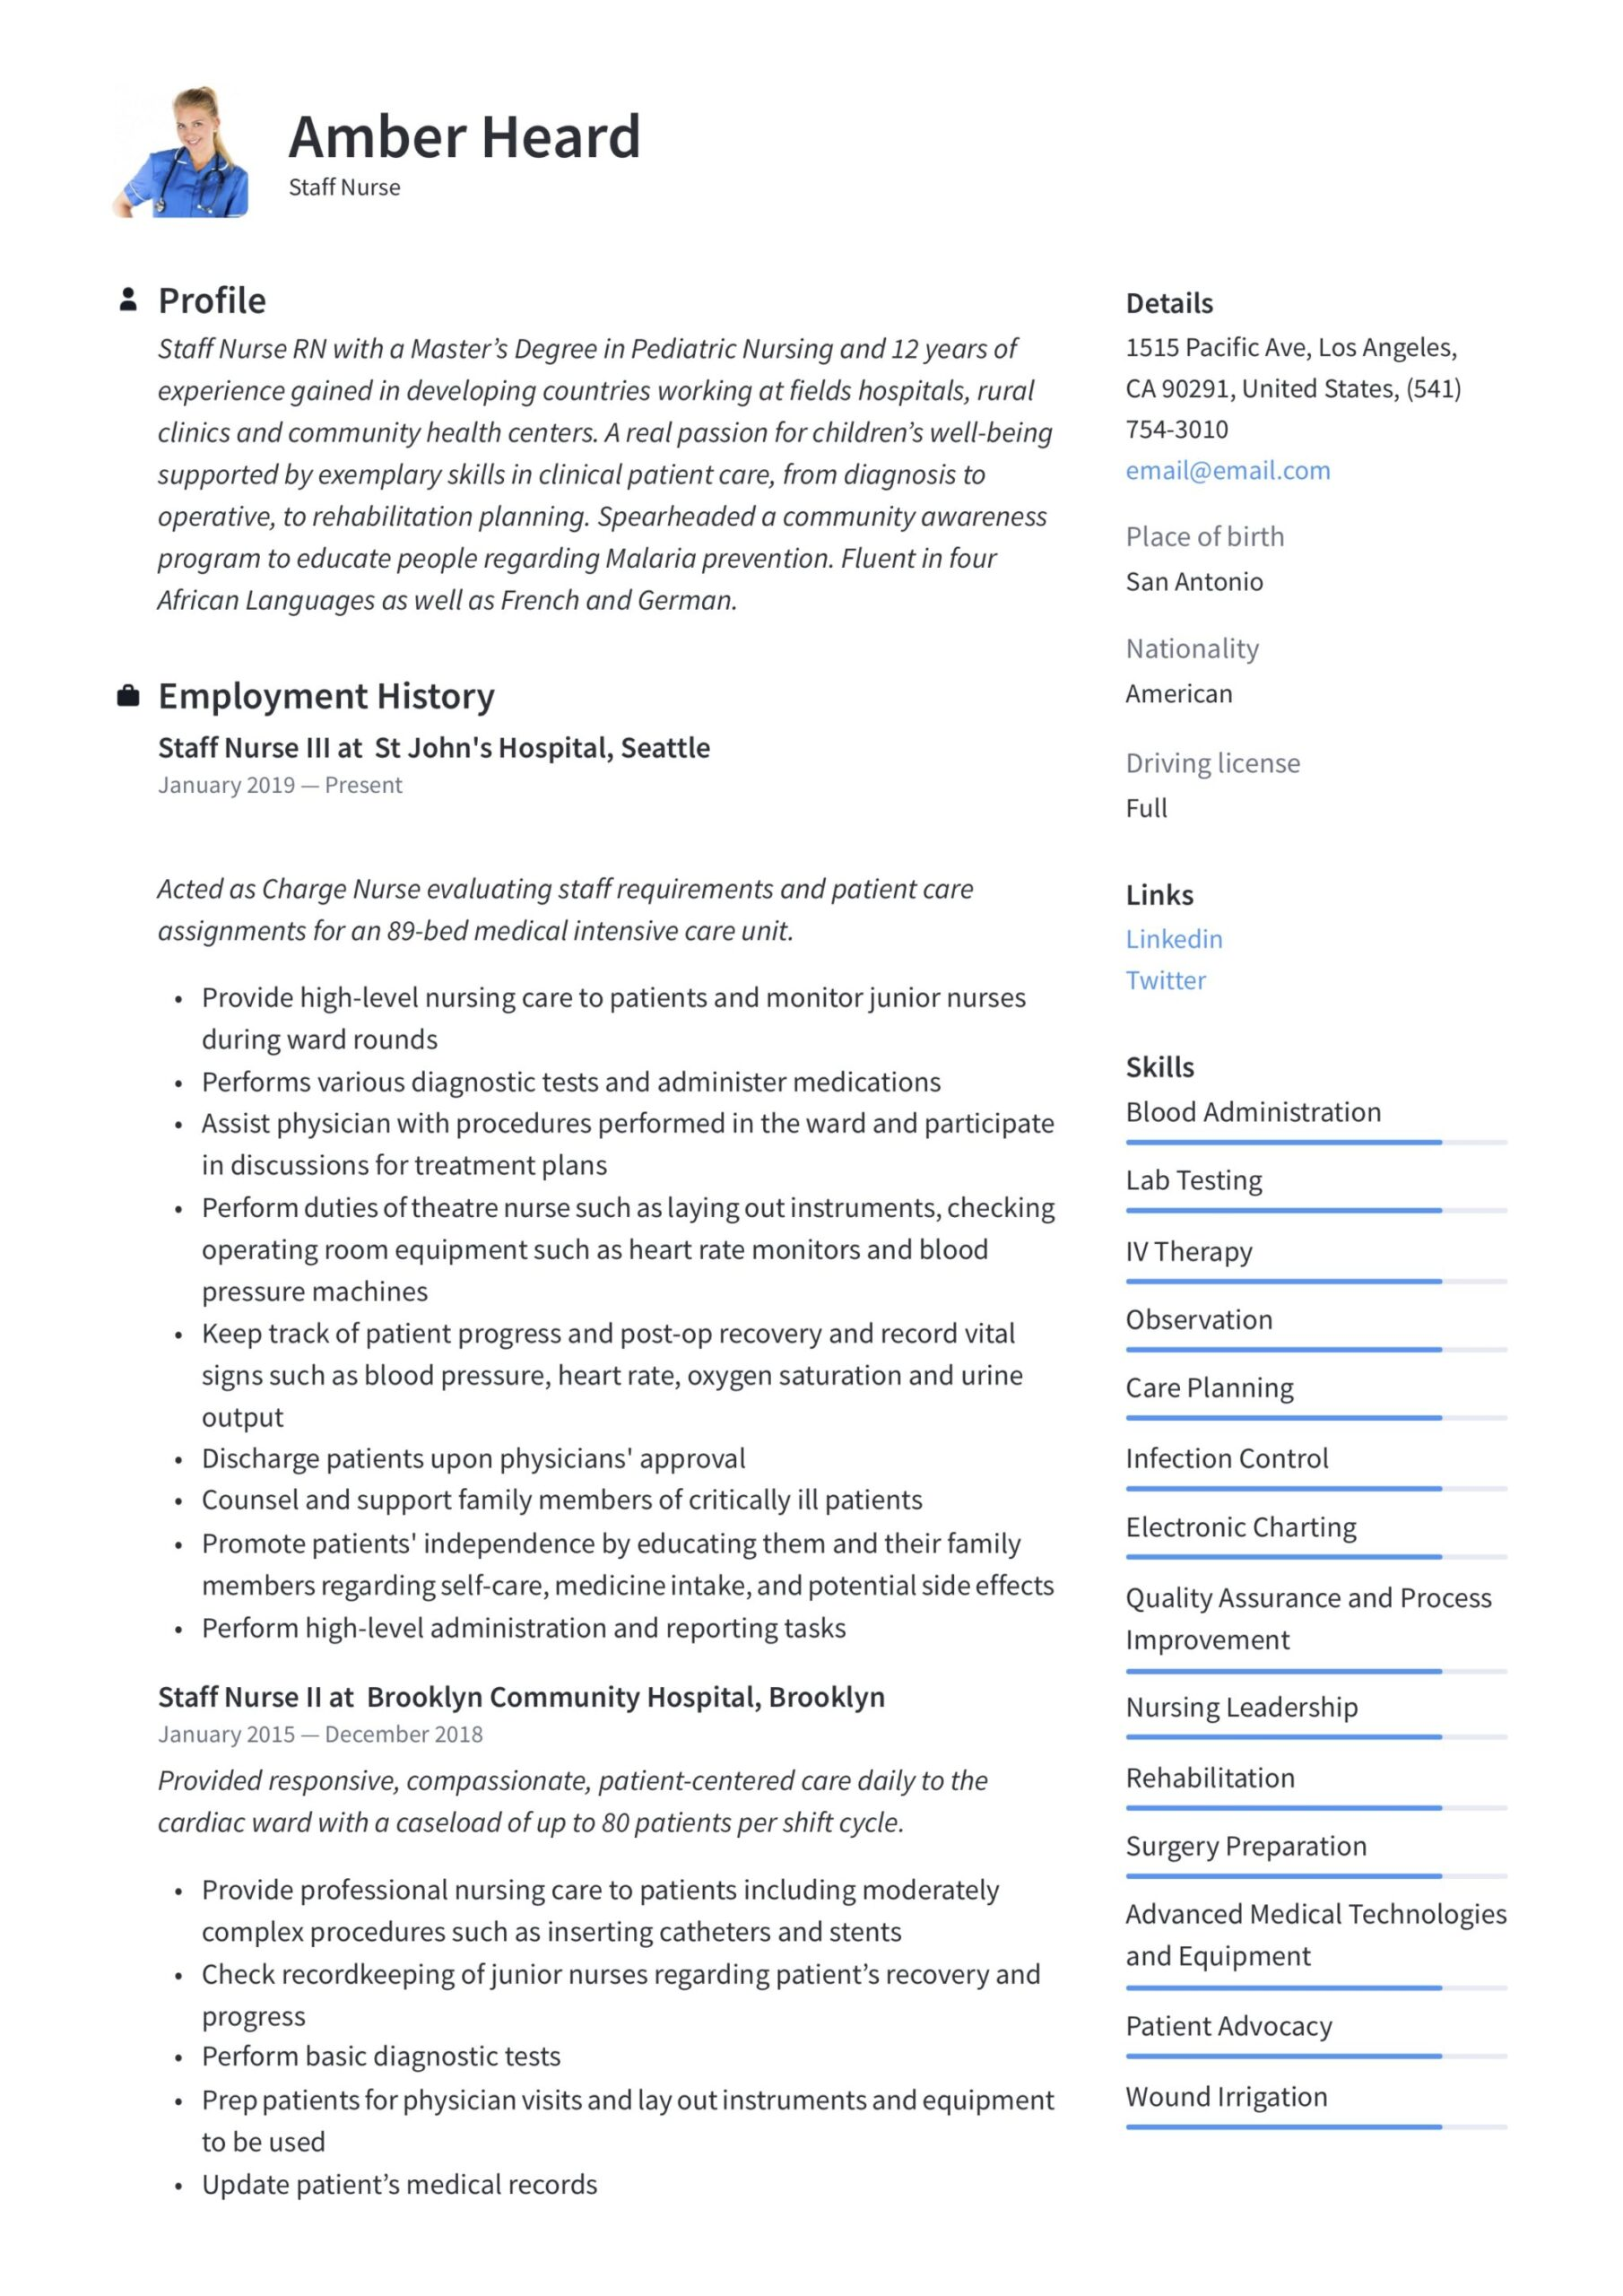 staff nurse resume writing guide templates in pdf sample for nurses with experience Resume Sample Resume For Nurses With Experience